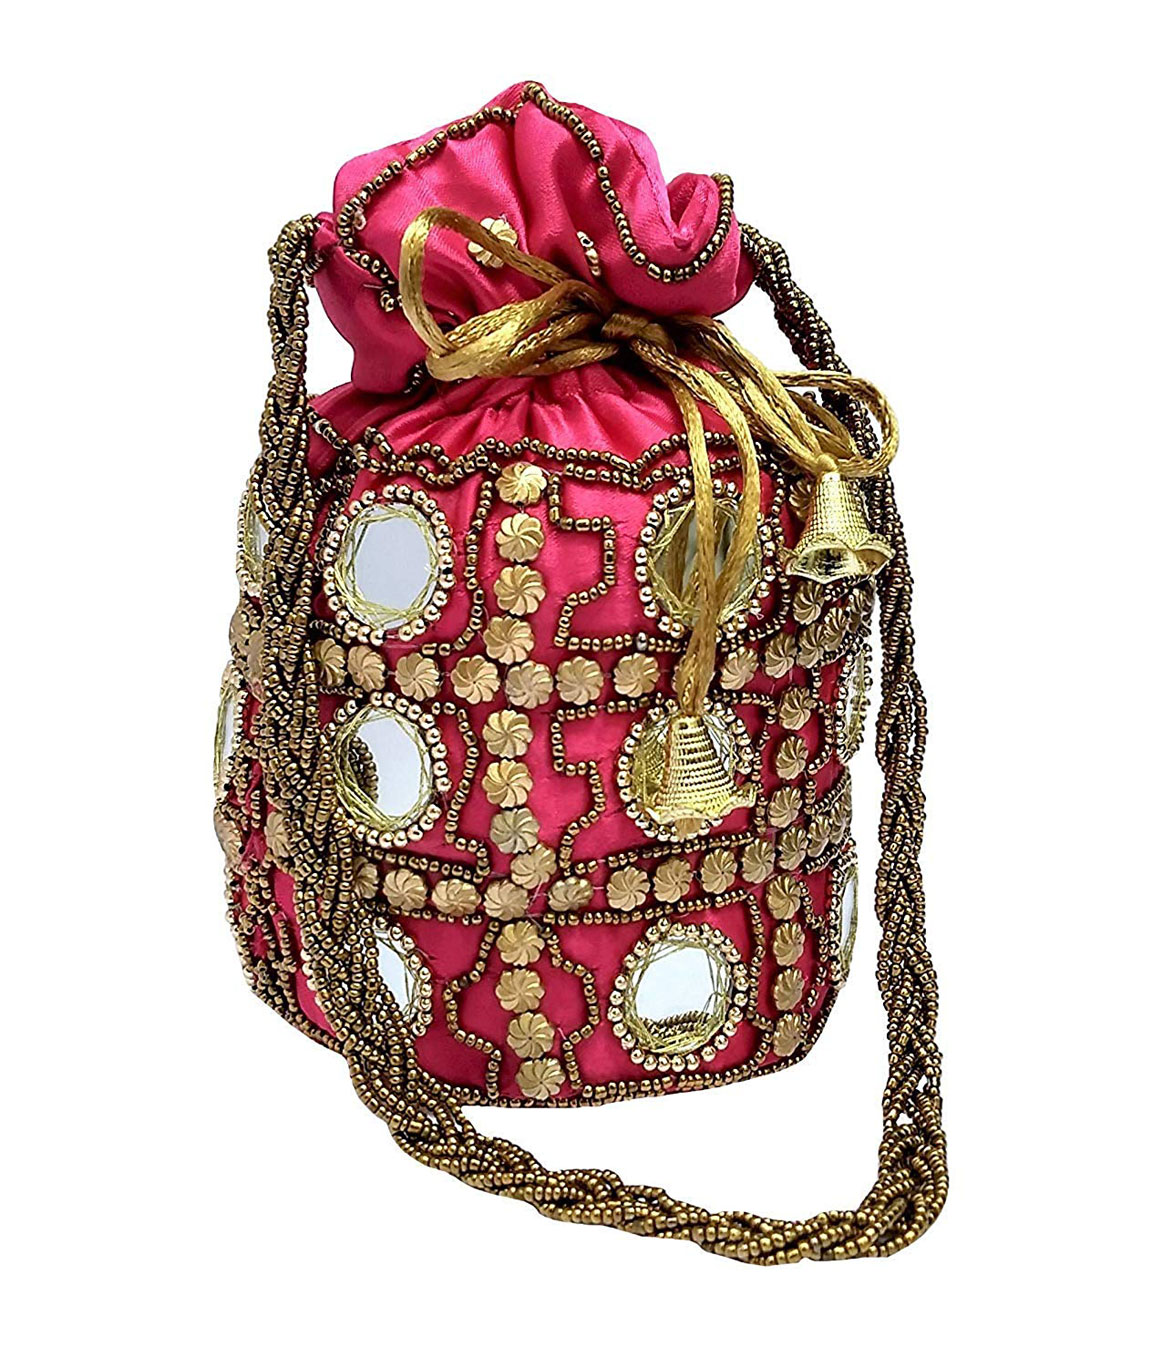 DN Enterprises Designer Potli Bag with Beadwork For Women Silk Fabric Standard Size Single Bag(pink)